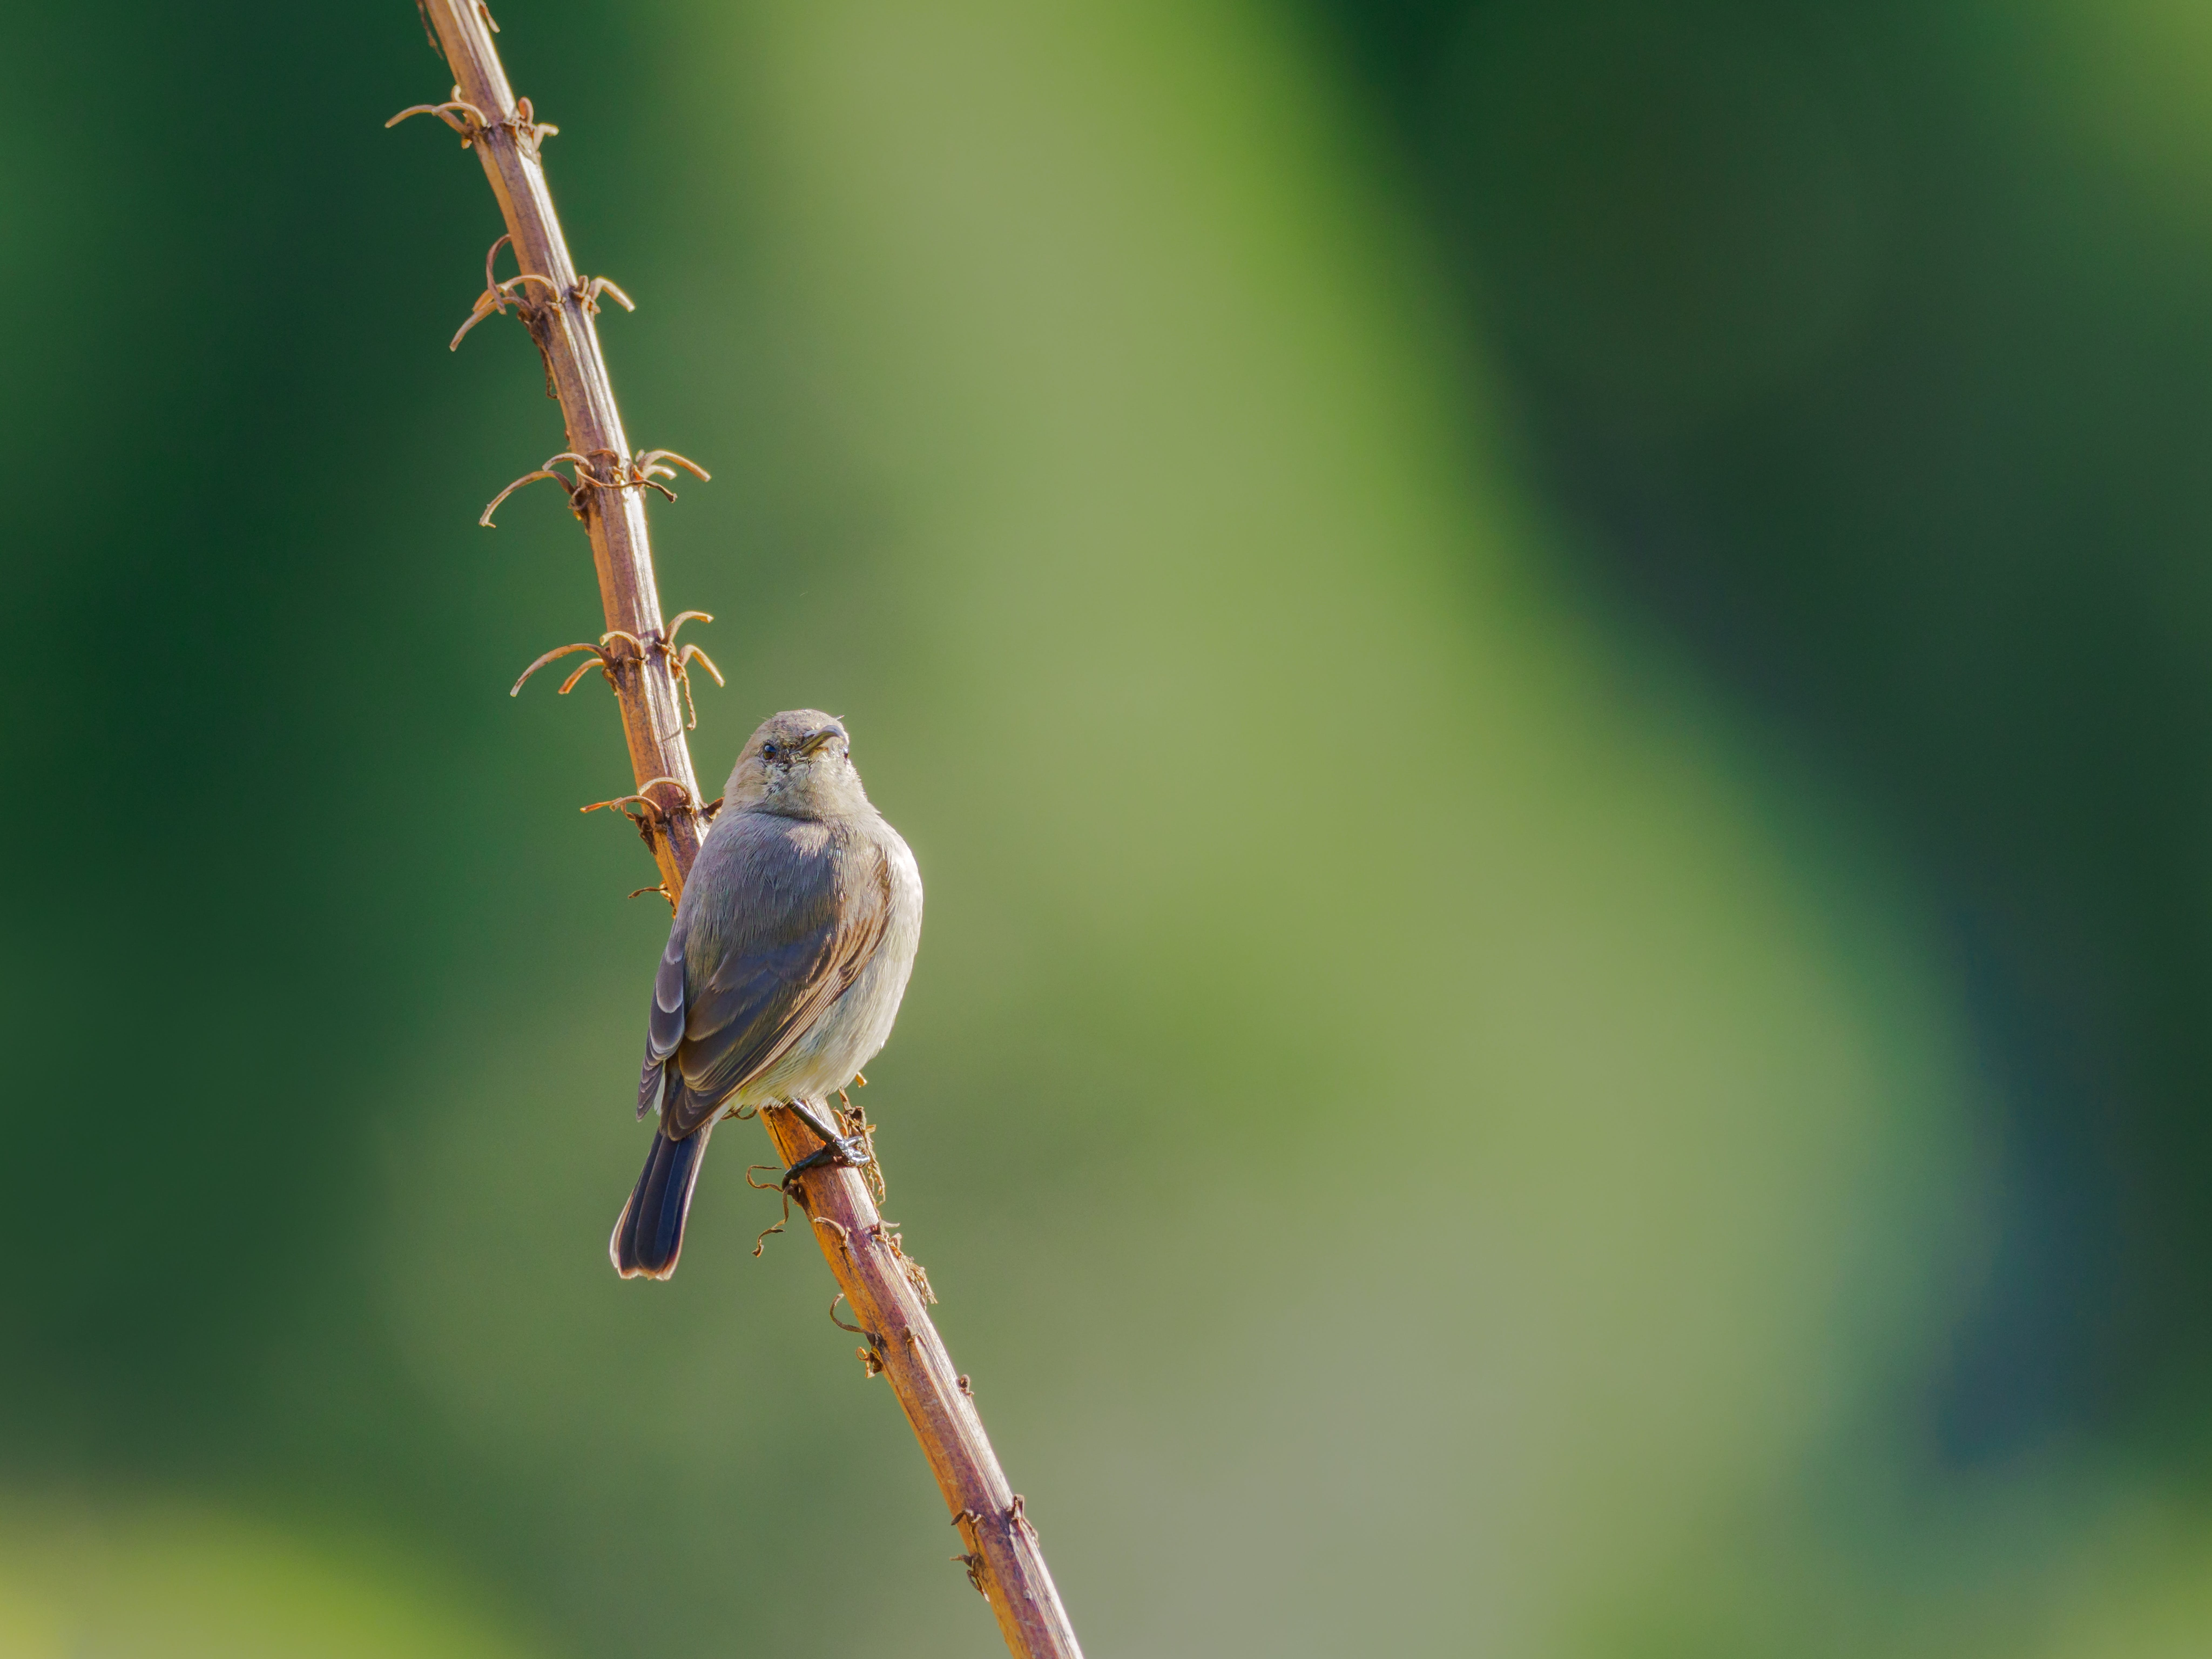 Selective Focus Photography of Gray Bird Perching on Branch